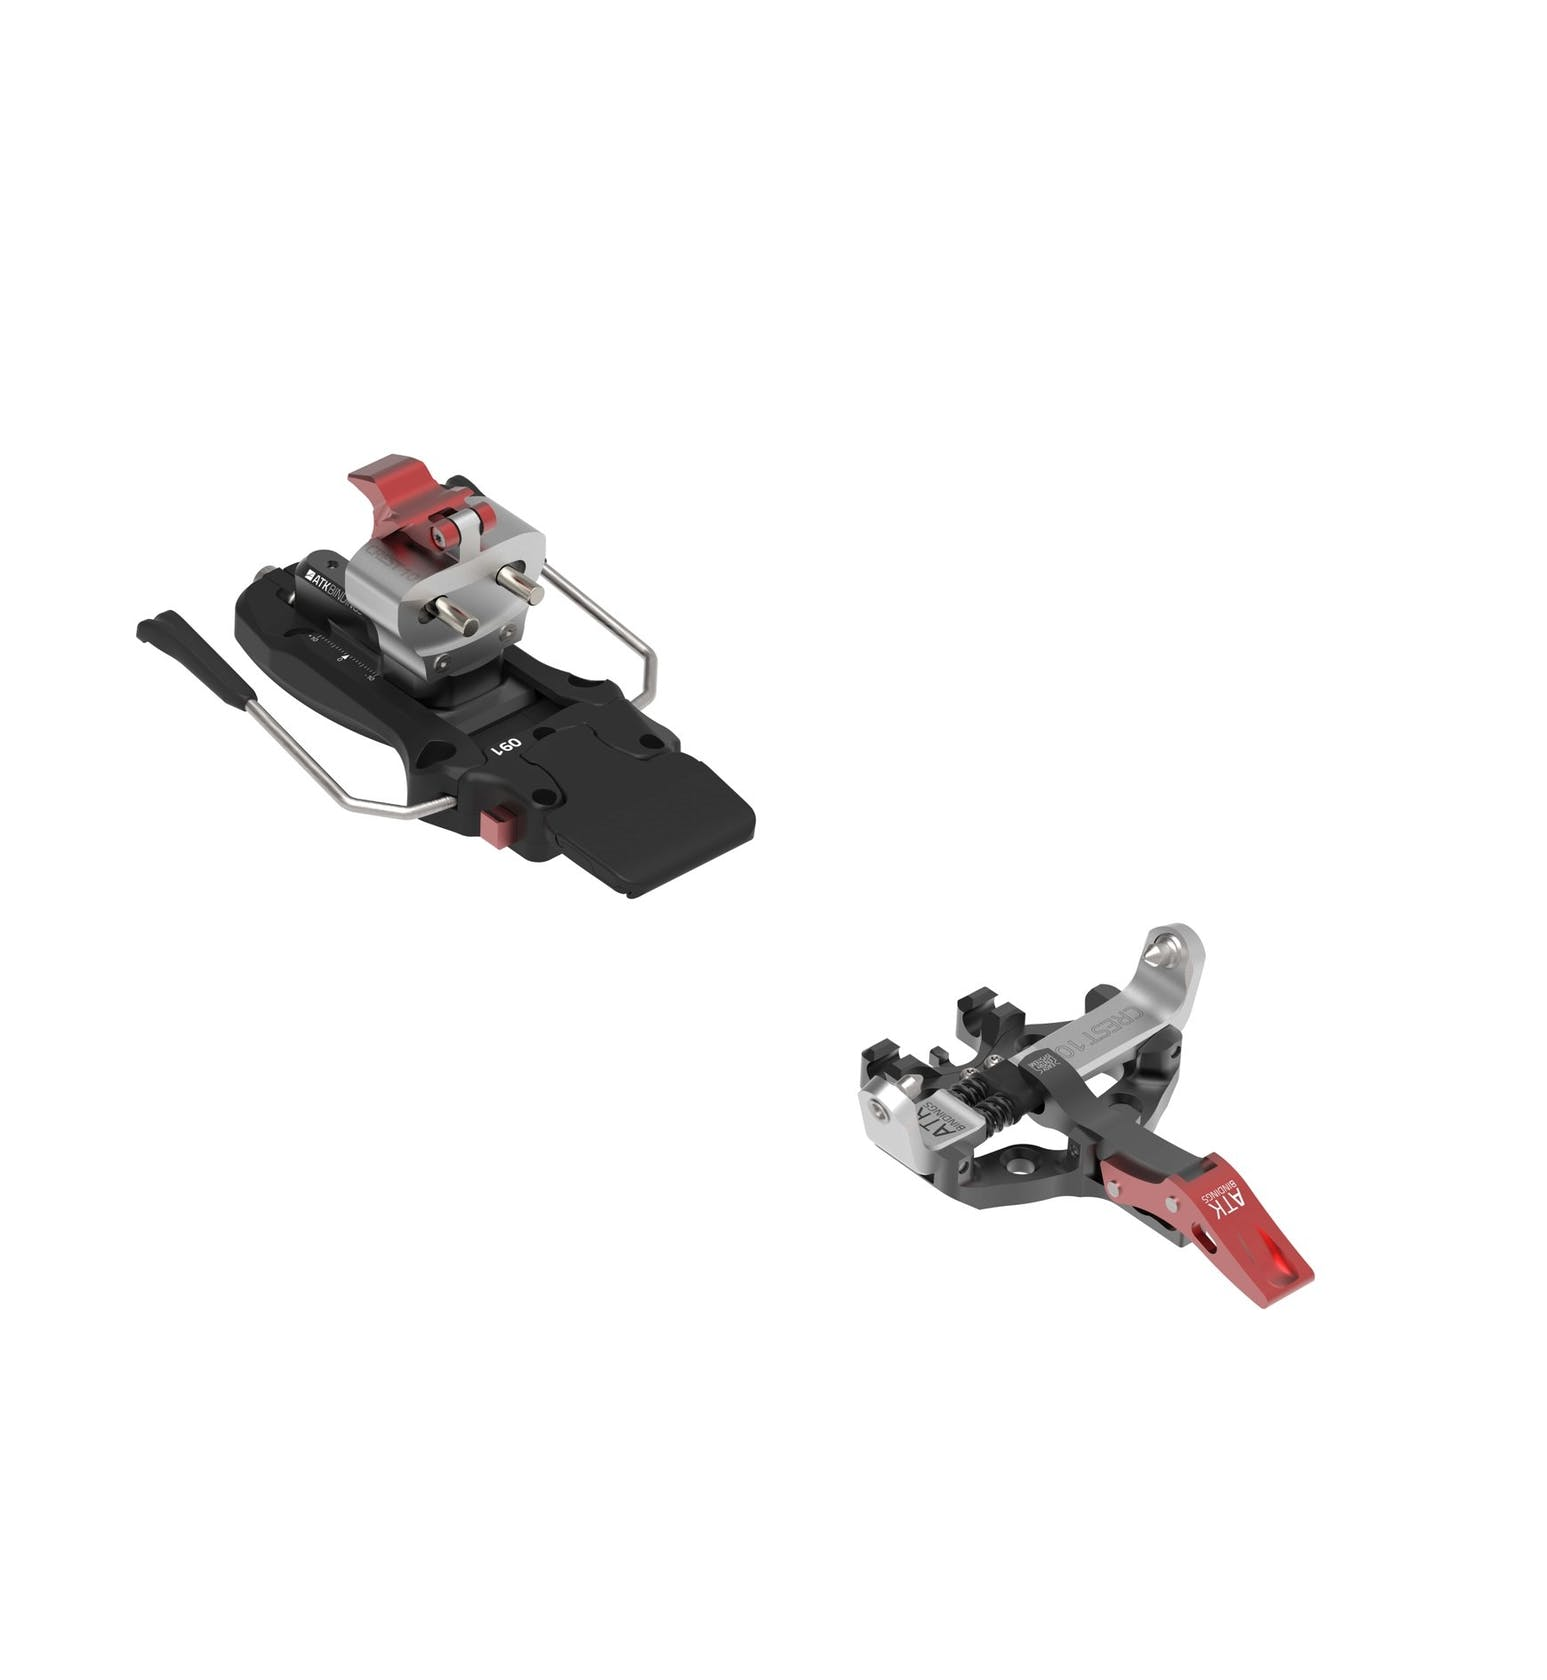 ATK Bindings Crest 10 (Ski brake 97 mm) - attacco scialpinismo